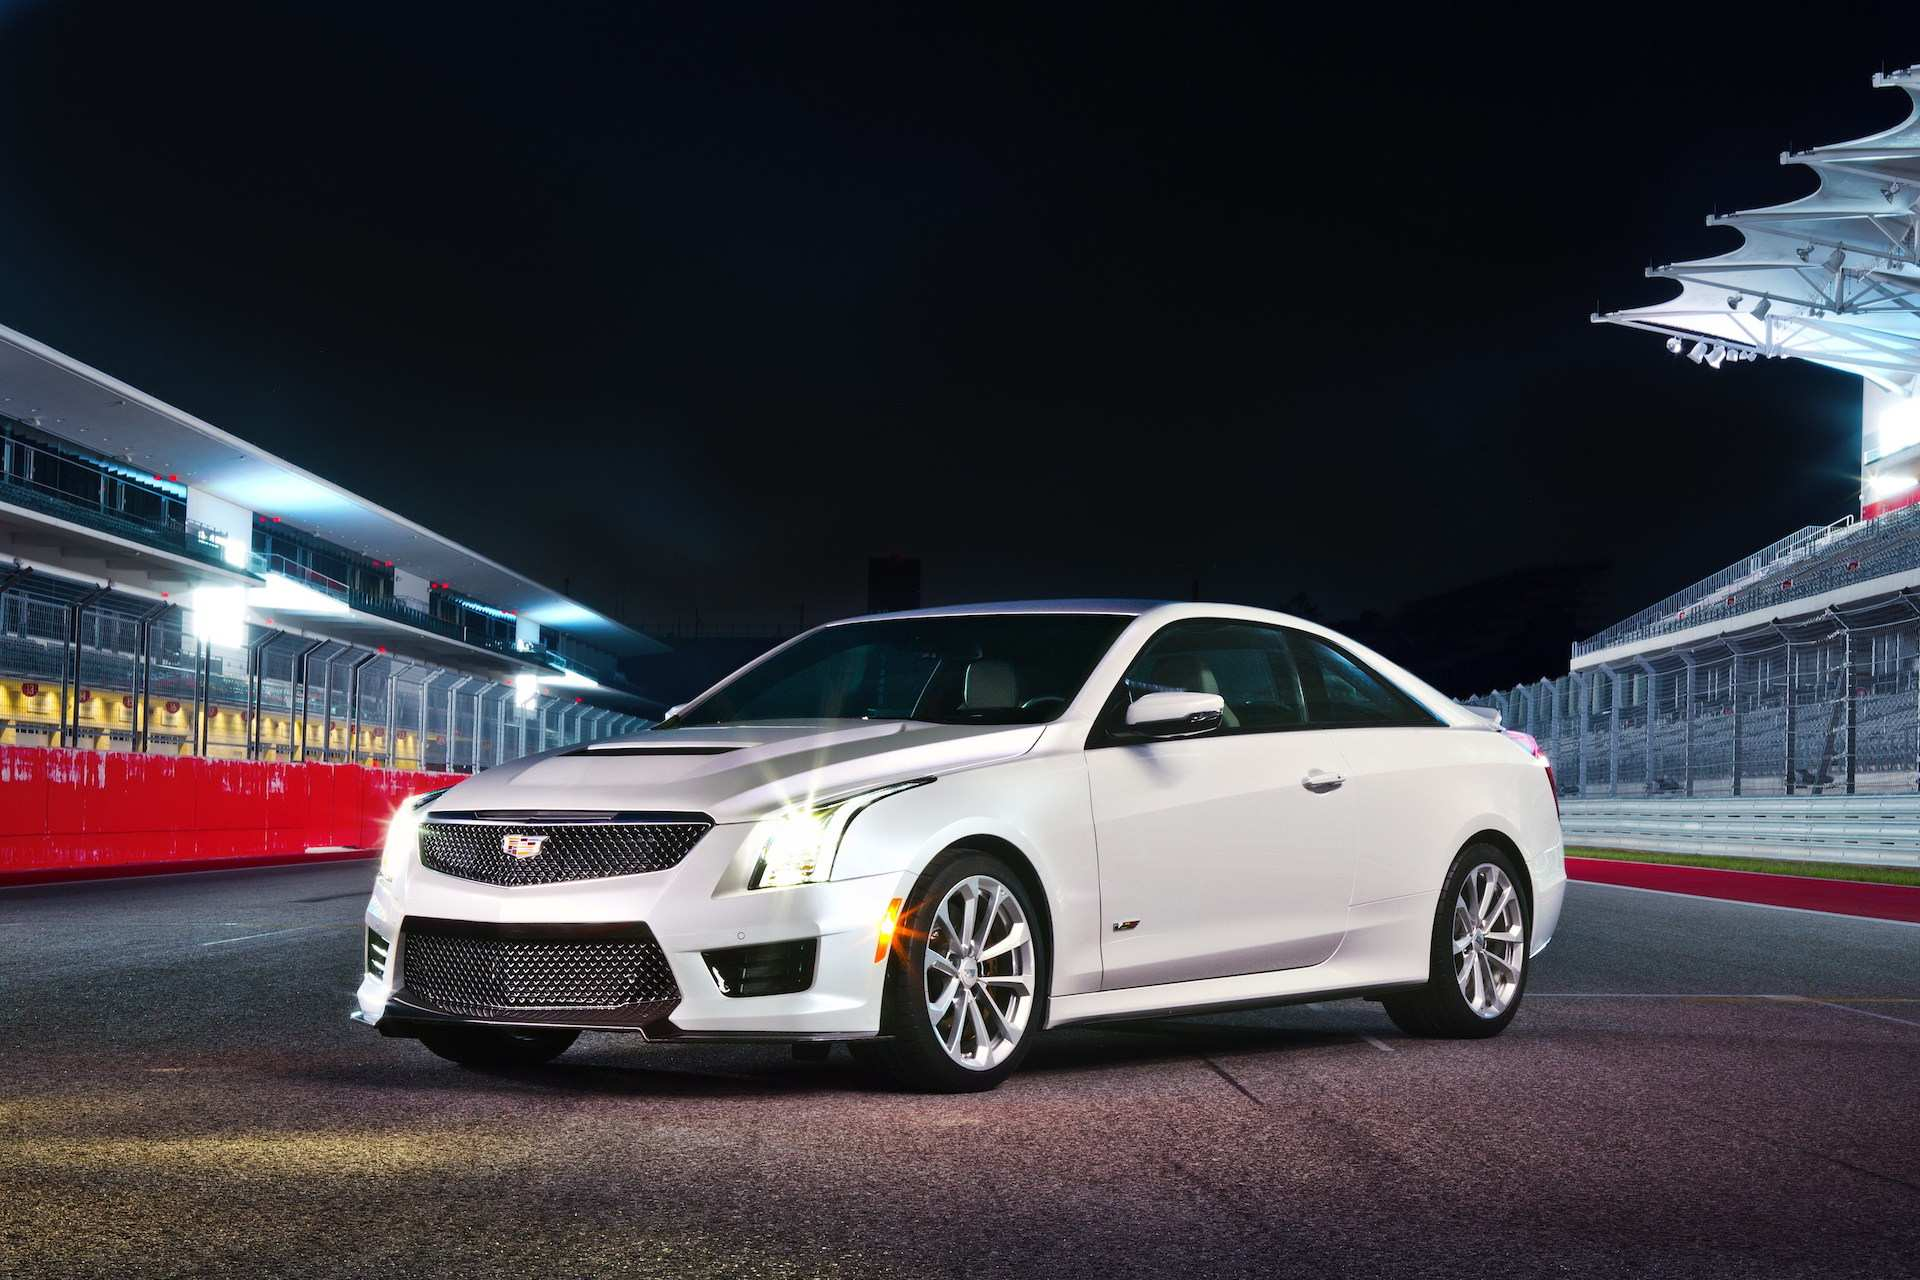 21 Great Cadillac 2019 Ats Coupe Redesign Price And Review Specs by Cadillac 2019 Ats Coupe Redesign Price And Review